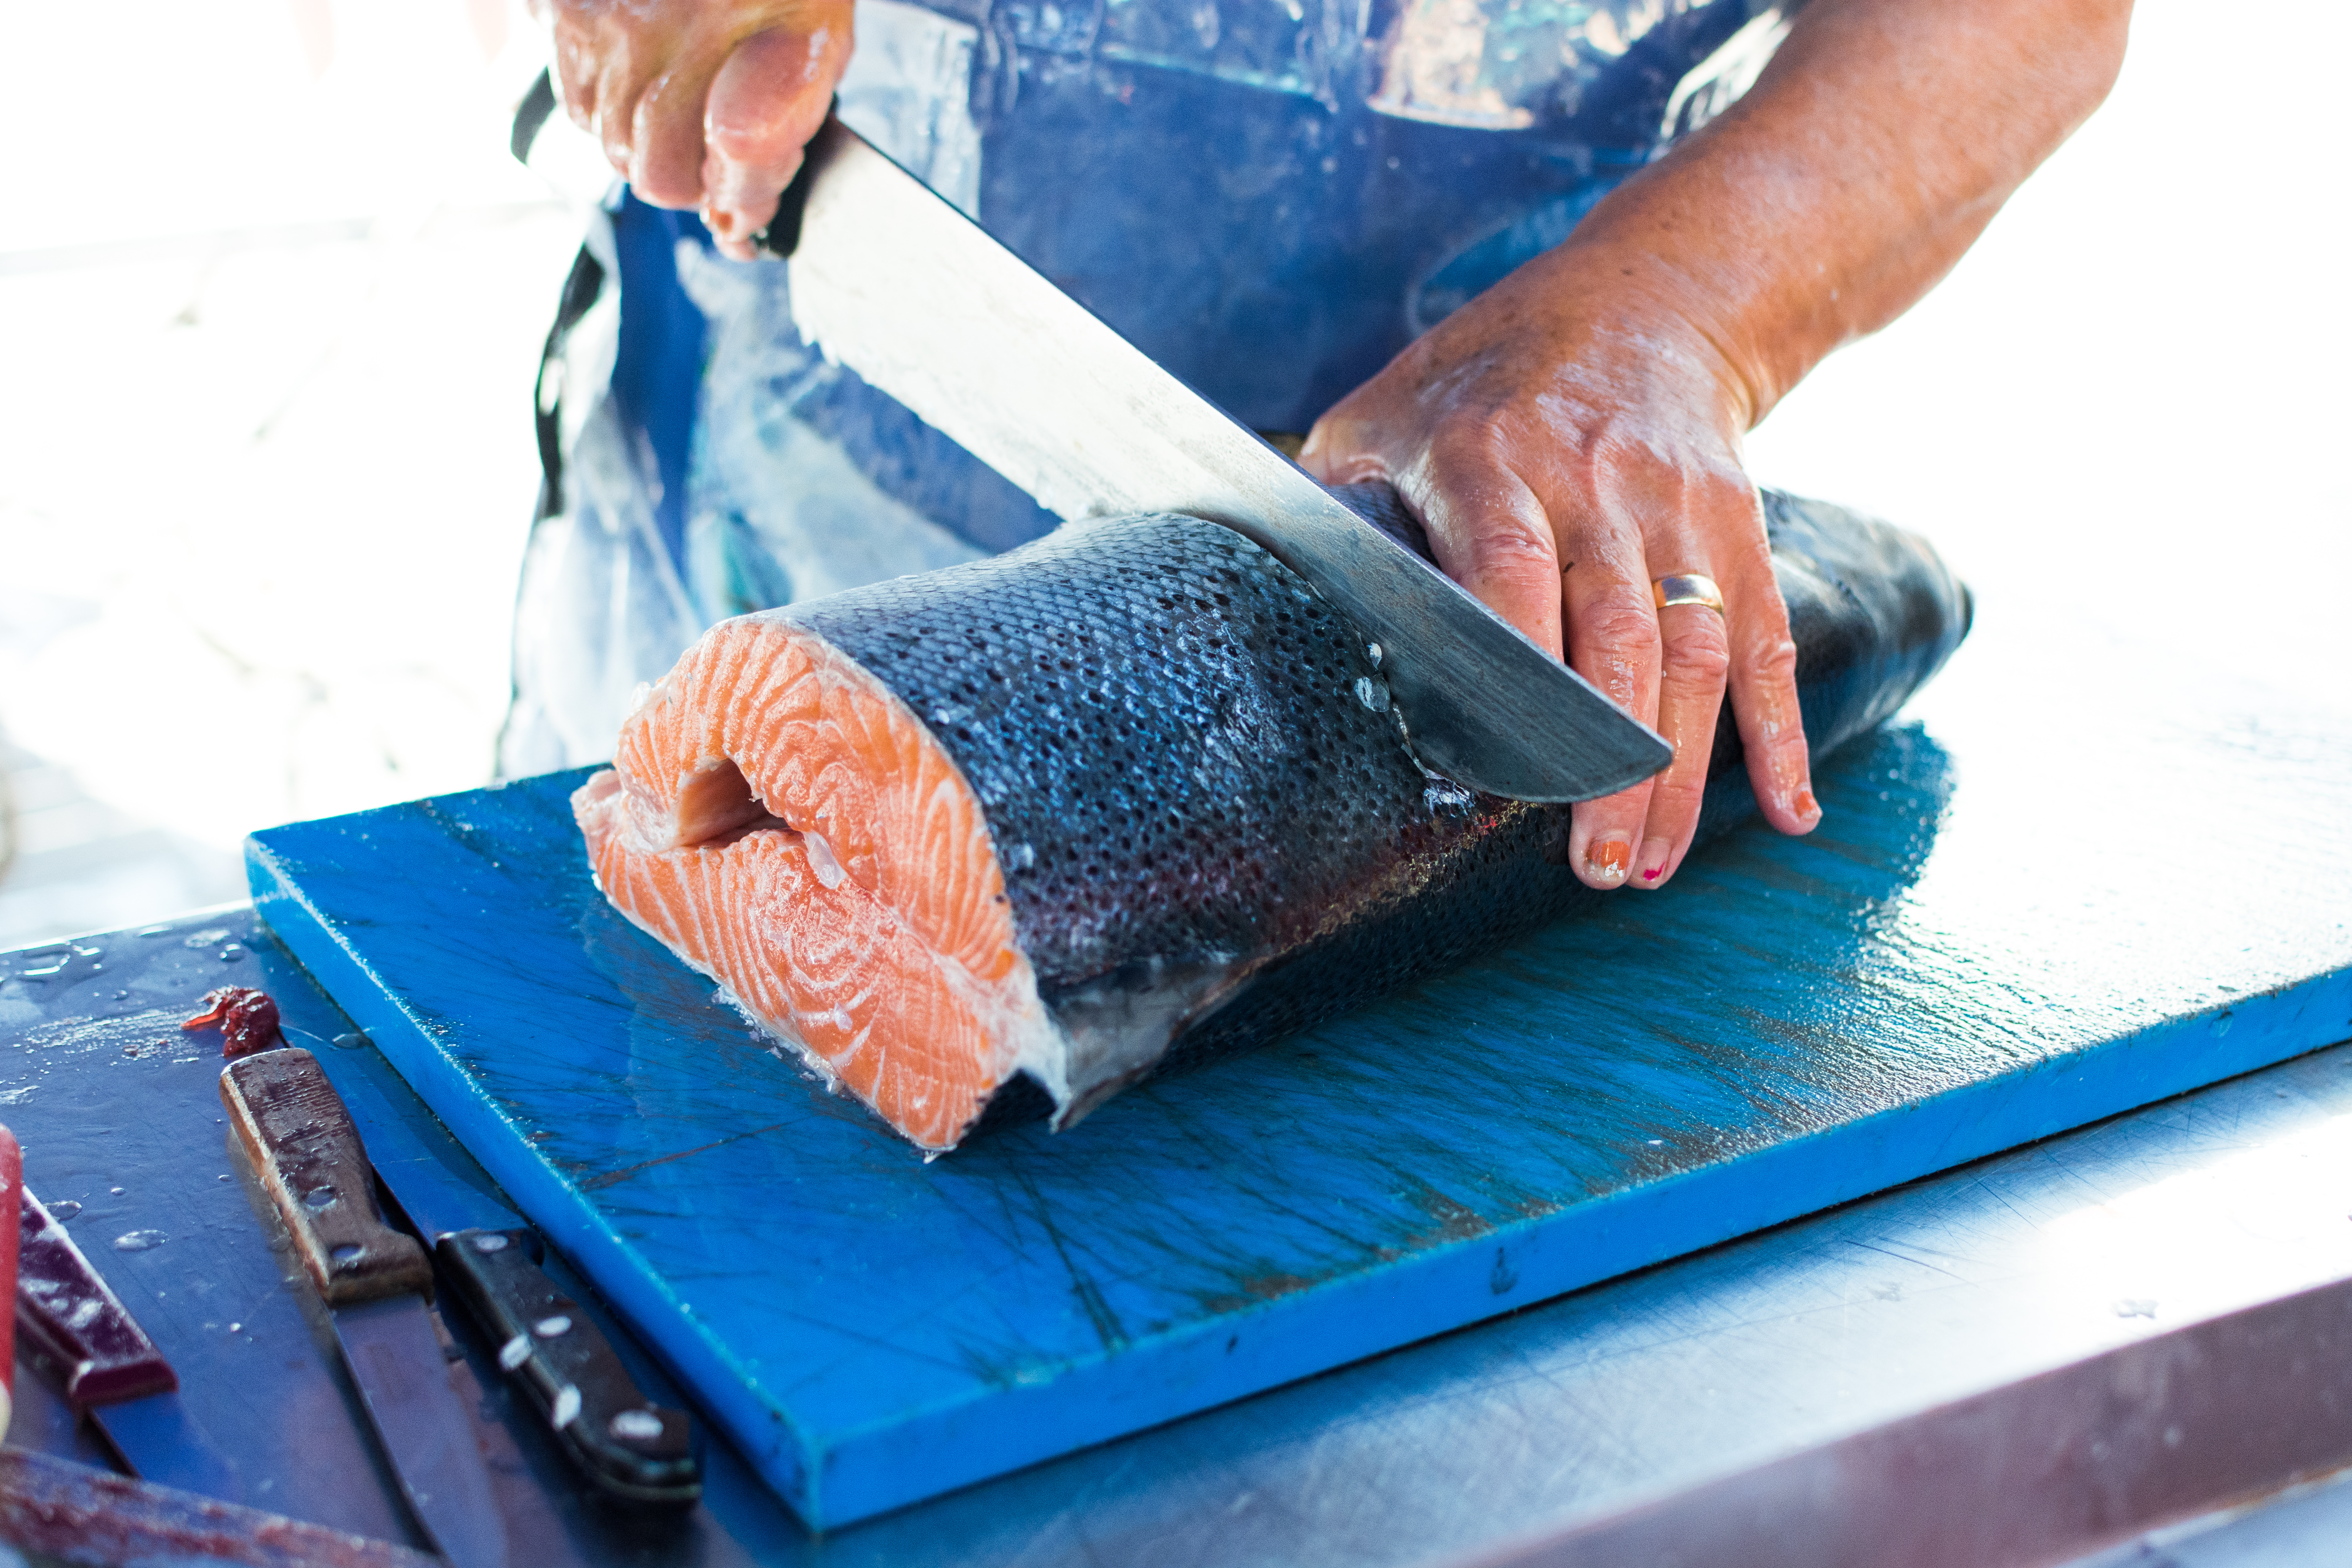 Cutting fresh caught salmon